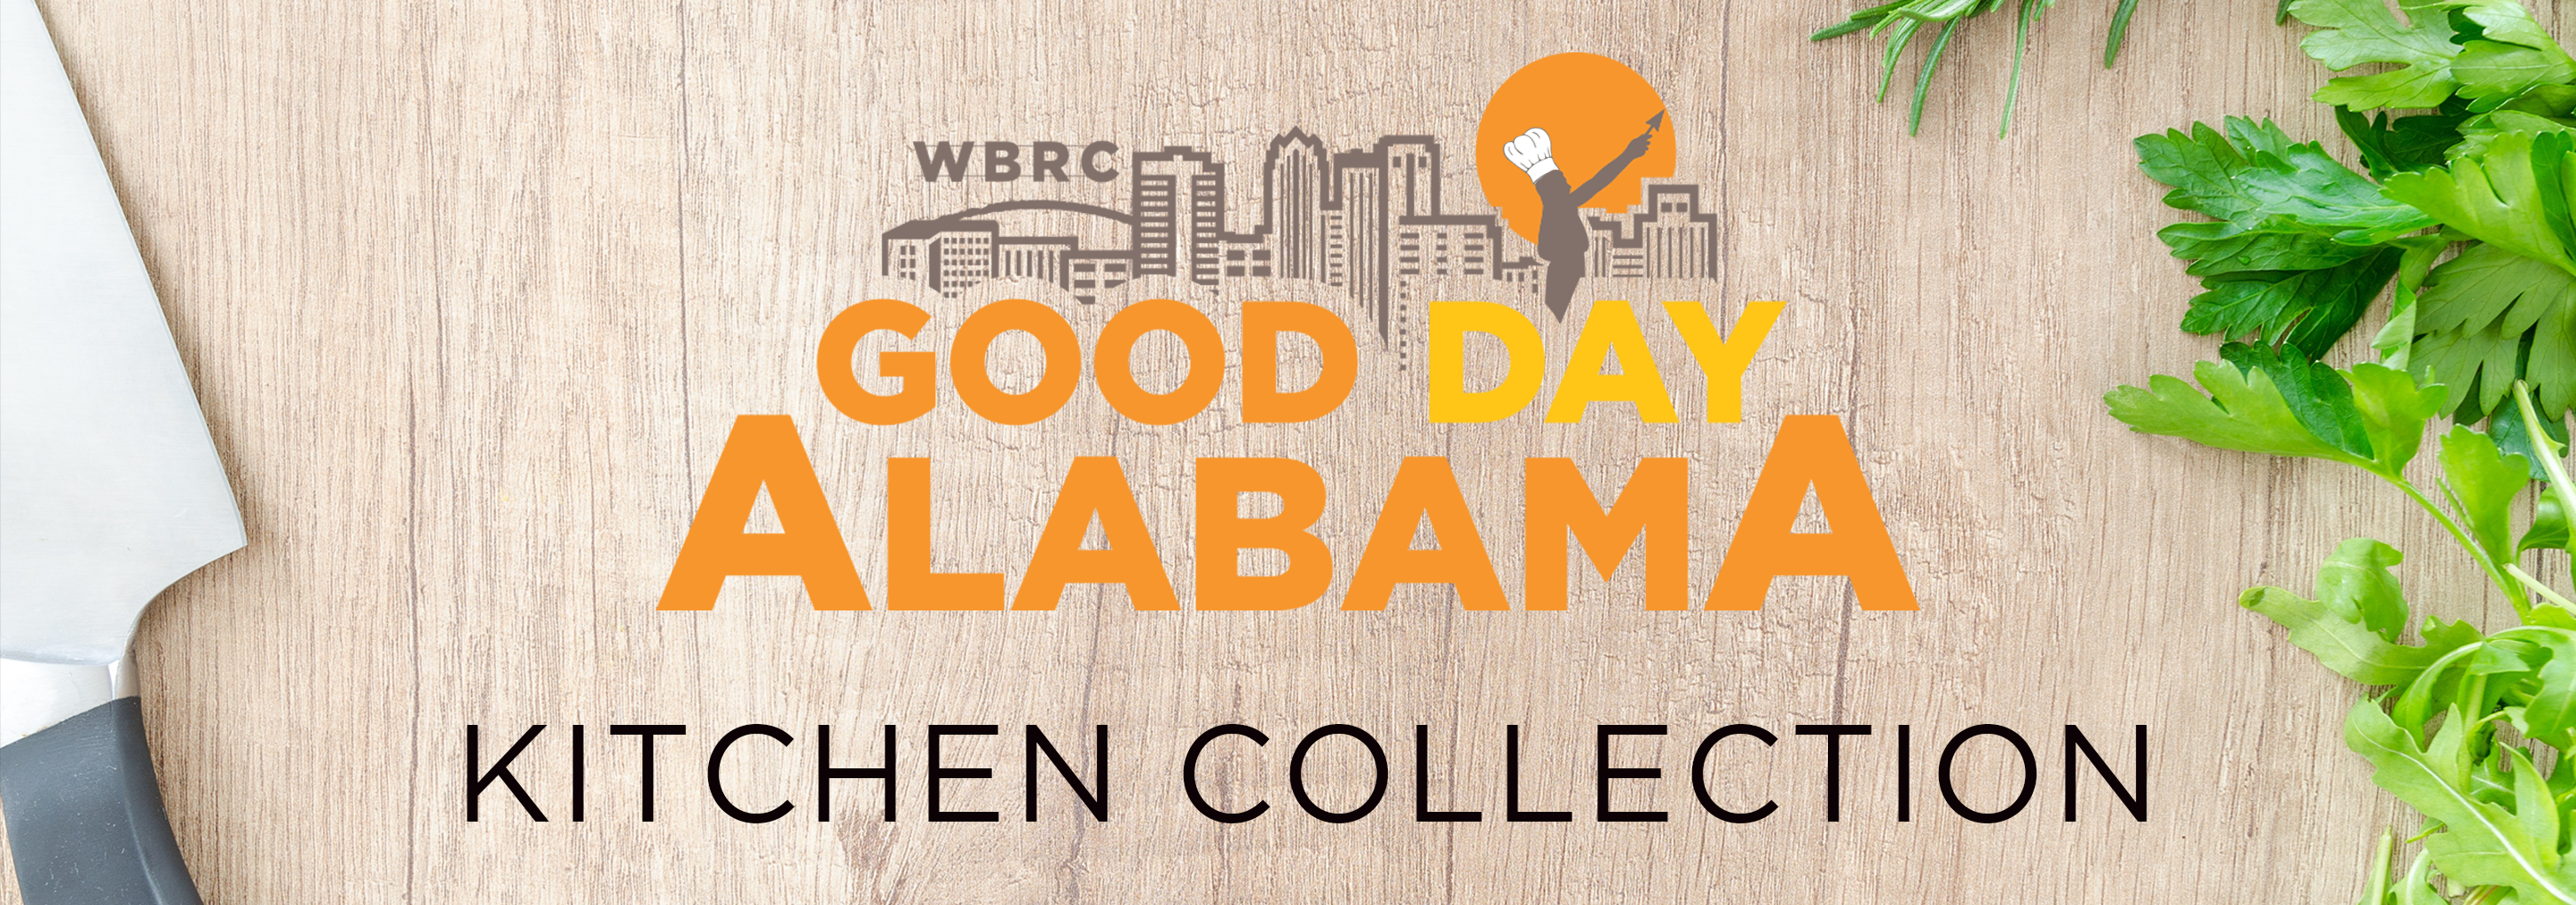 Good Day Alabama Kitchen